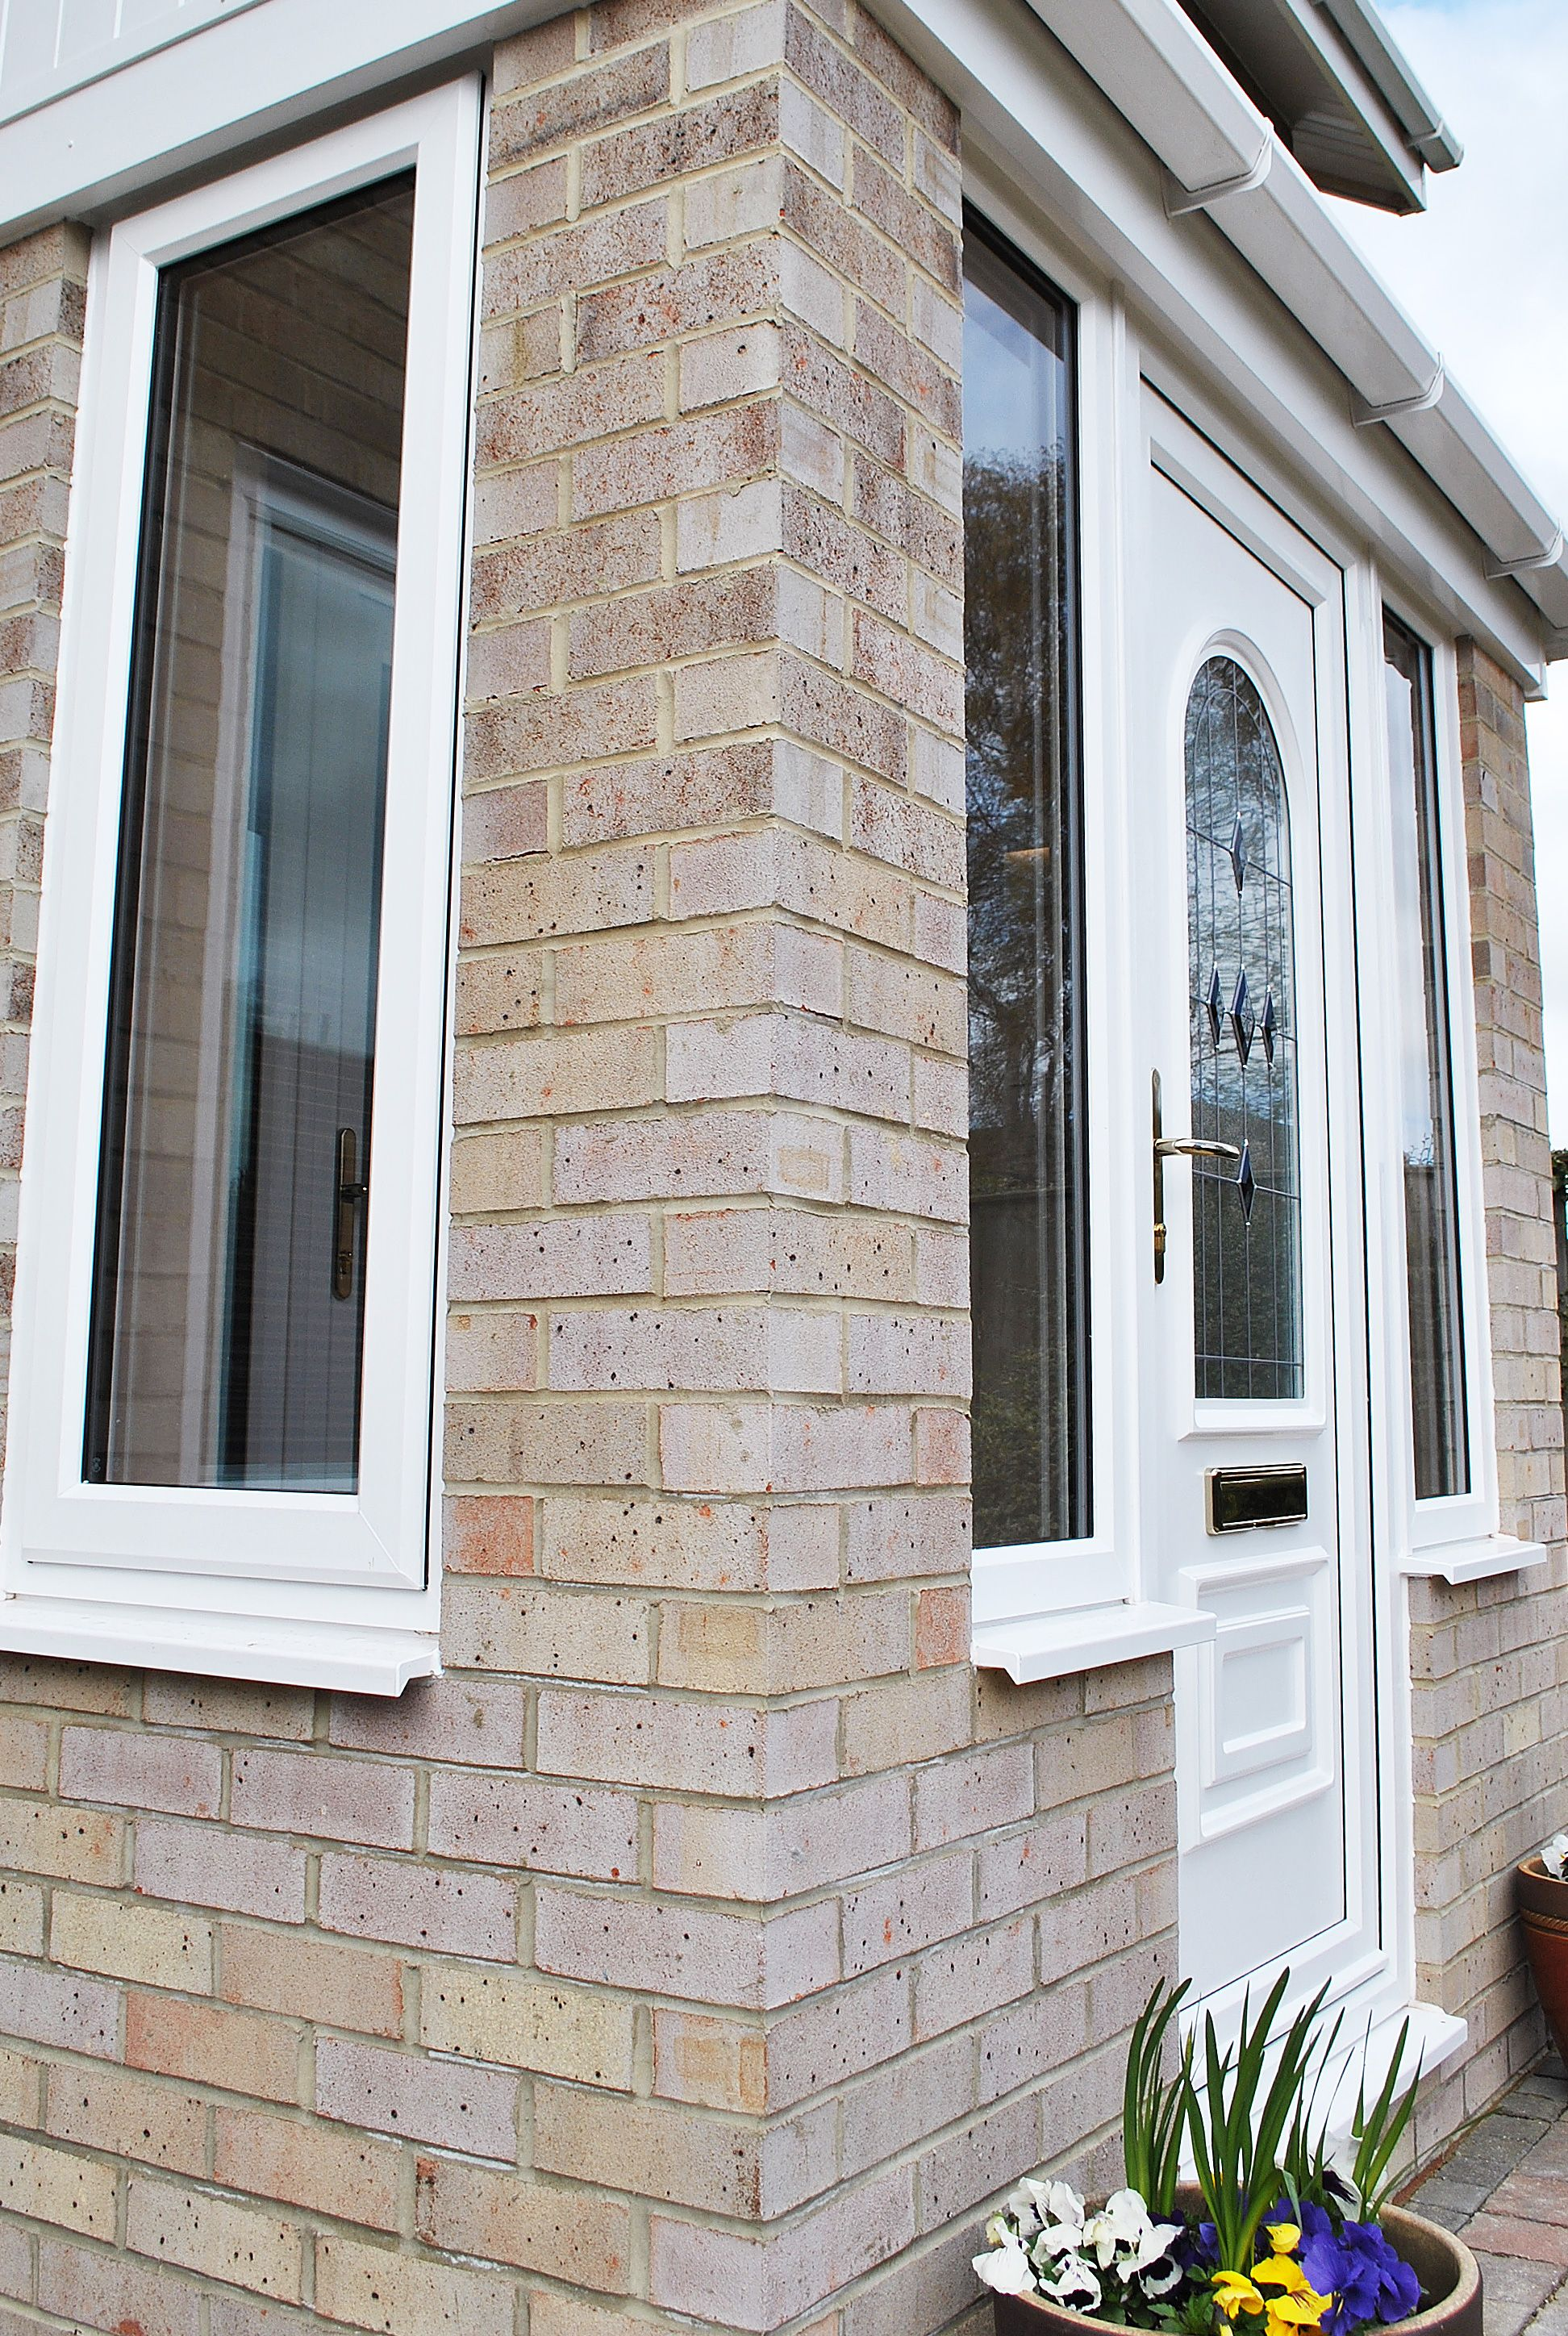 Fenesta upvc doors windows glass flooring - Stunning Porch Windows This Is A Beautiful Porch With Large Side Windows And Front Door Designglass